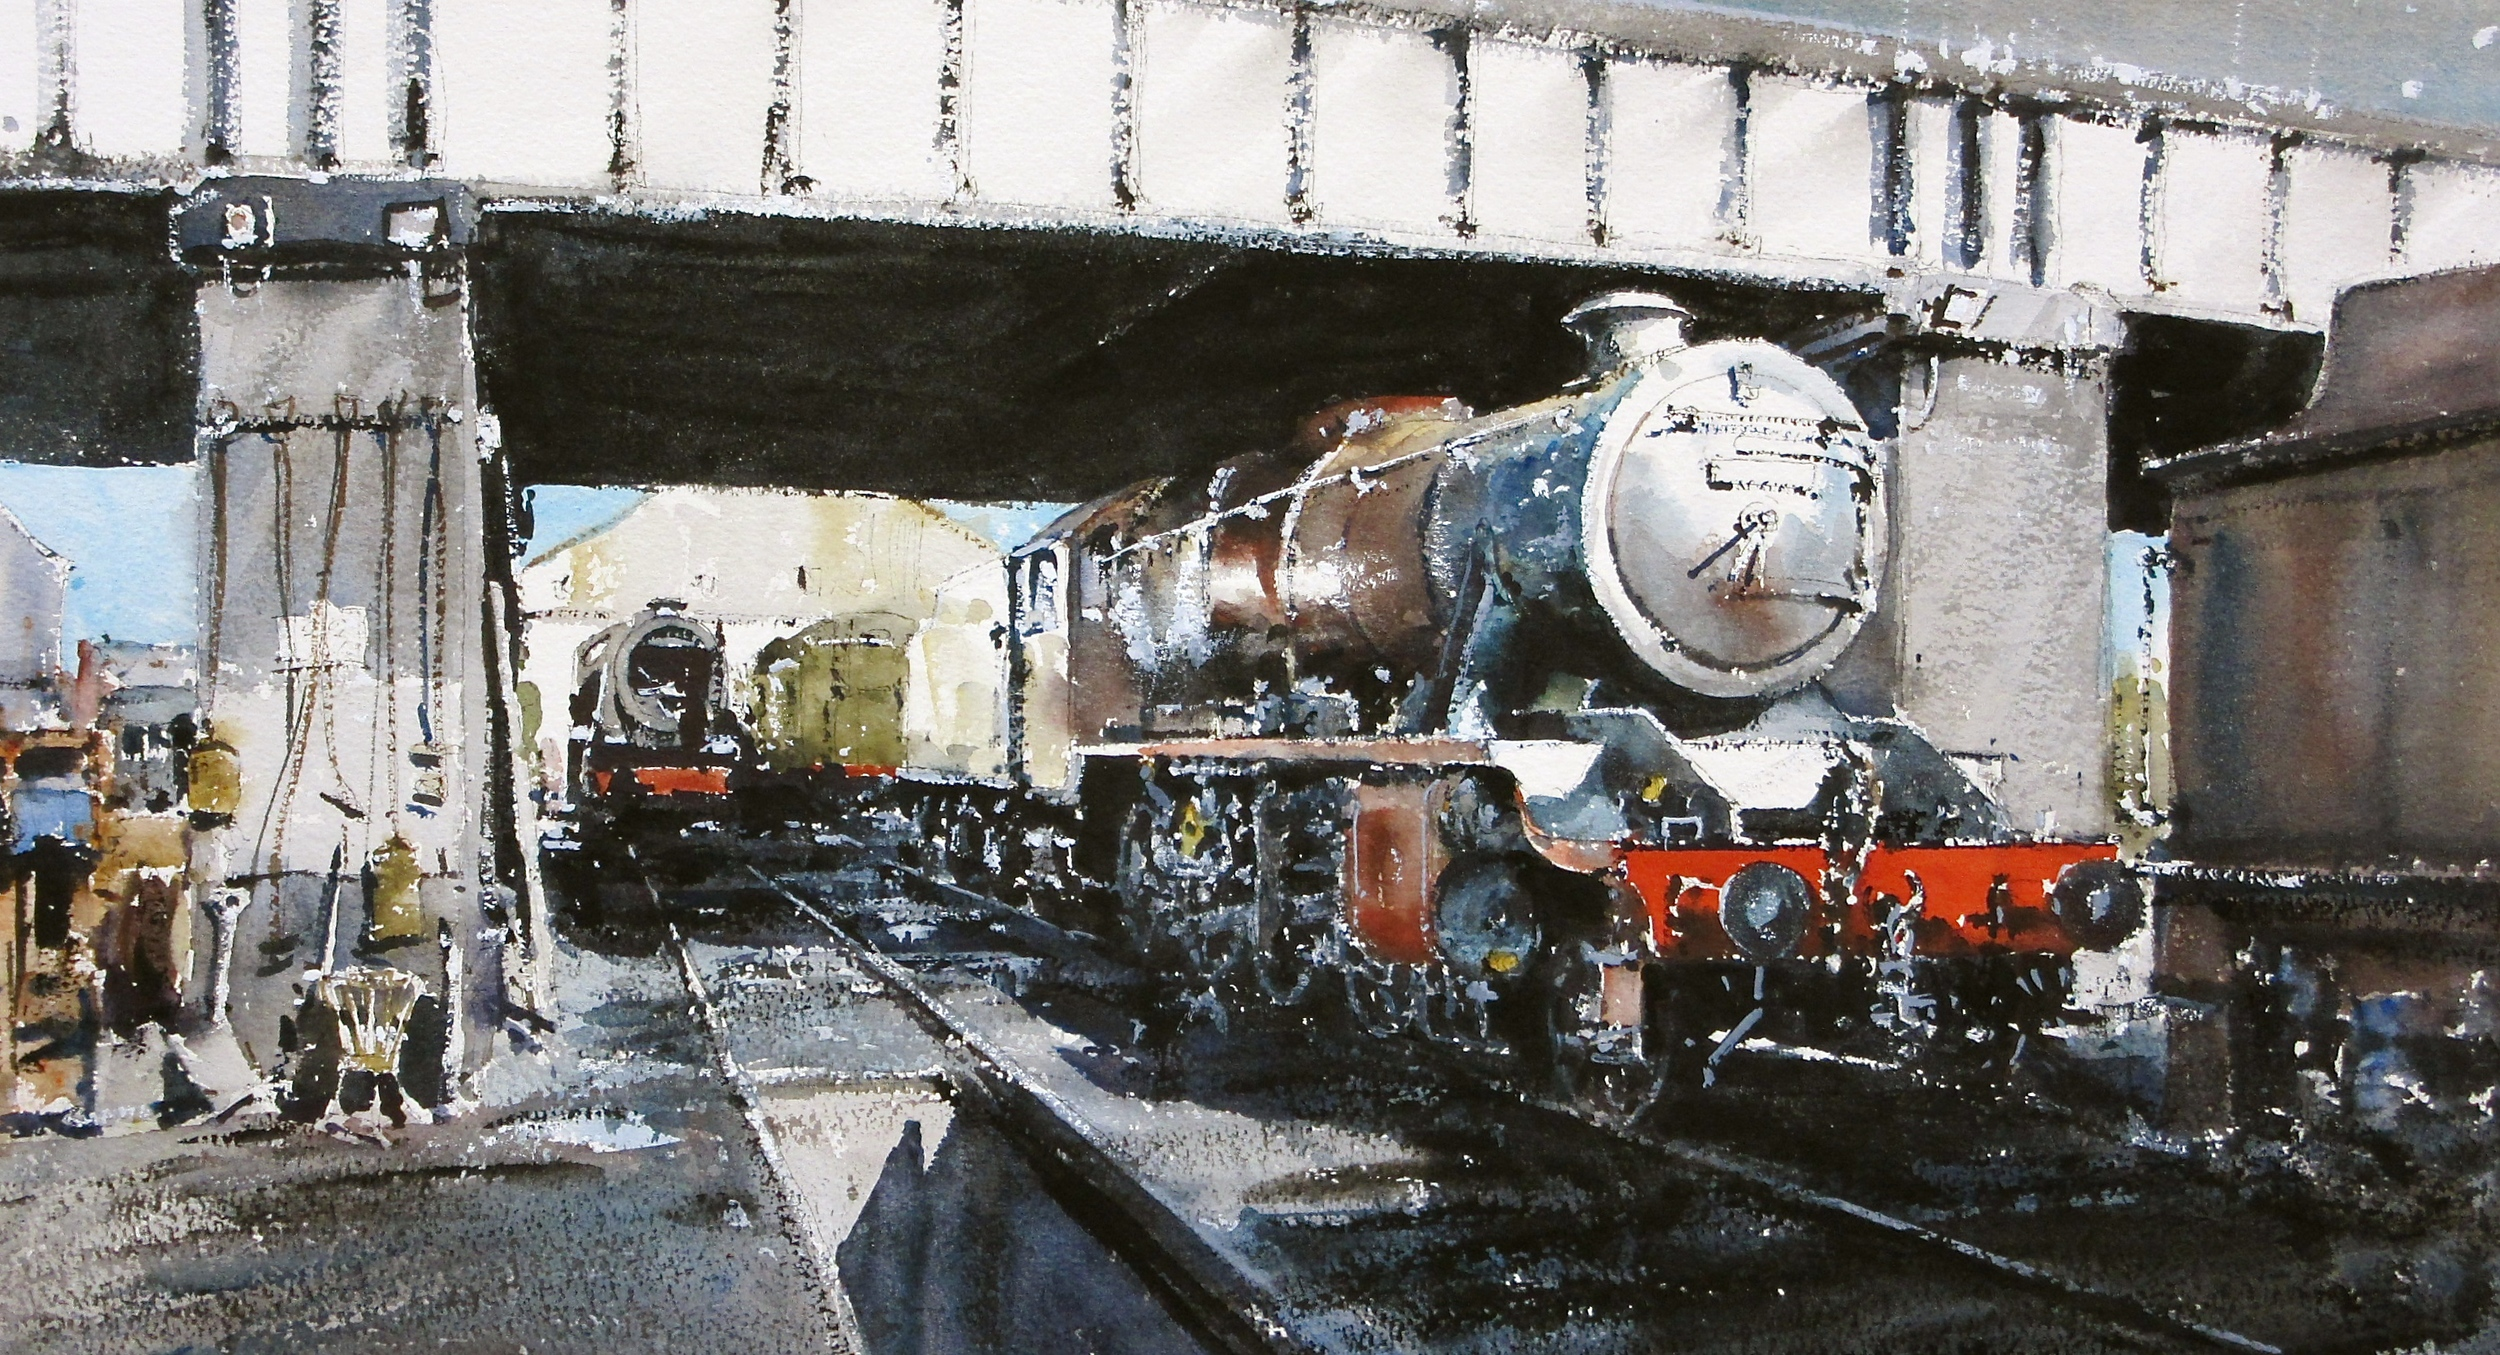 Loughborough Shed: 13 x 24 in: watercolour: £1150